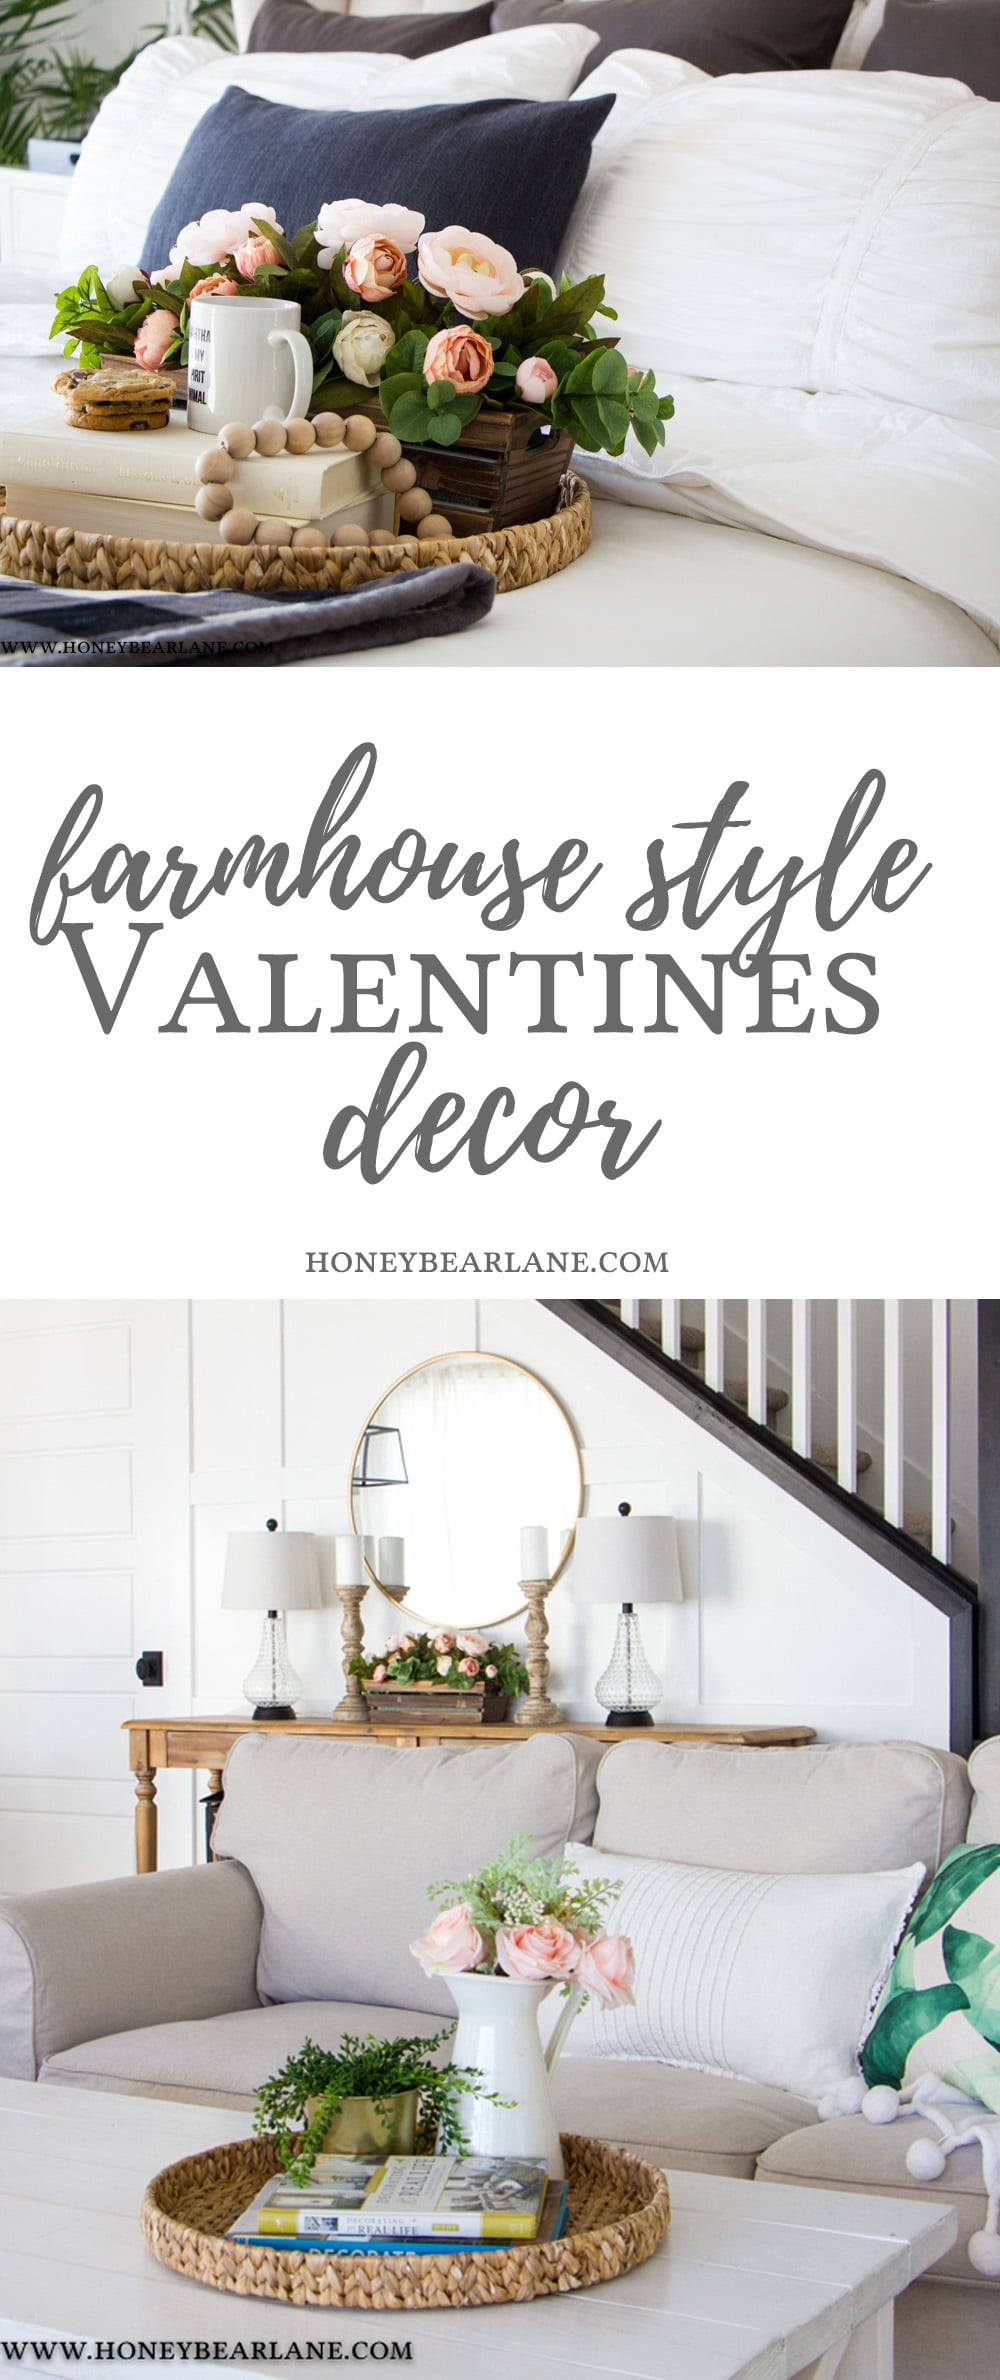 My Home Decor Guide: Farmhouse Style Valentines Decor